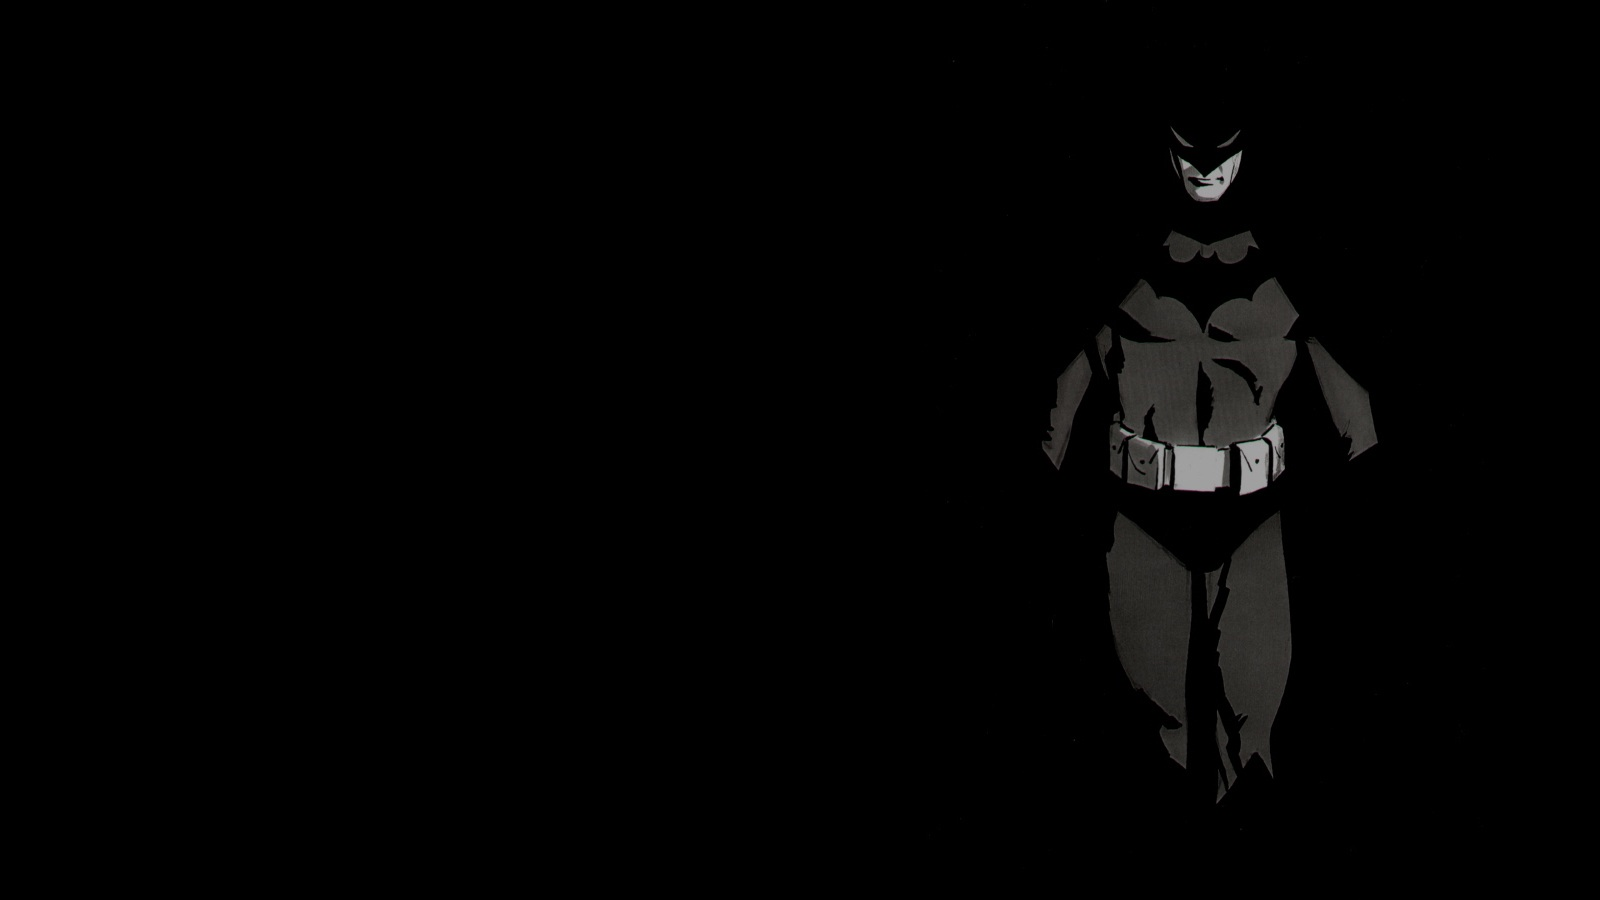 Shadow Of The Bat HD Wallpapers Backgrounds 1600x900